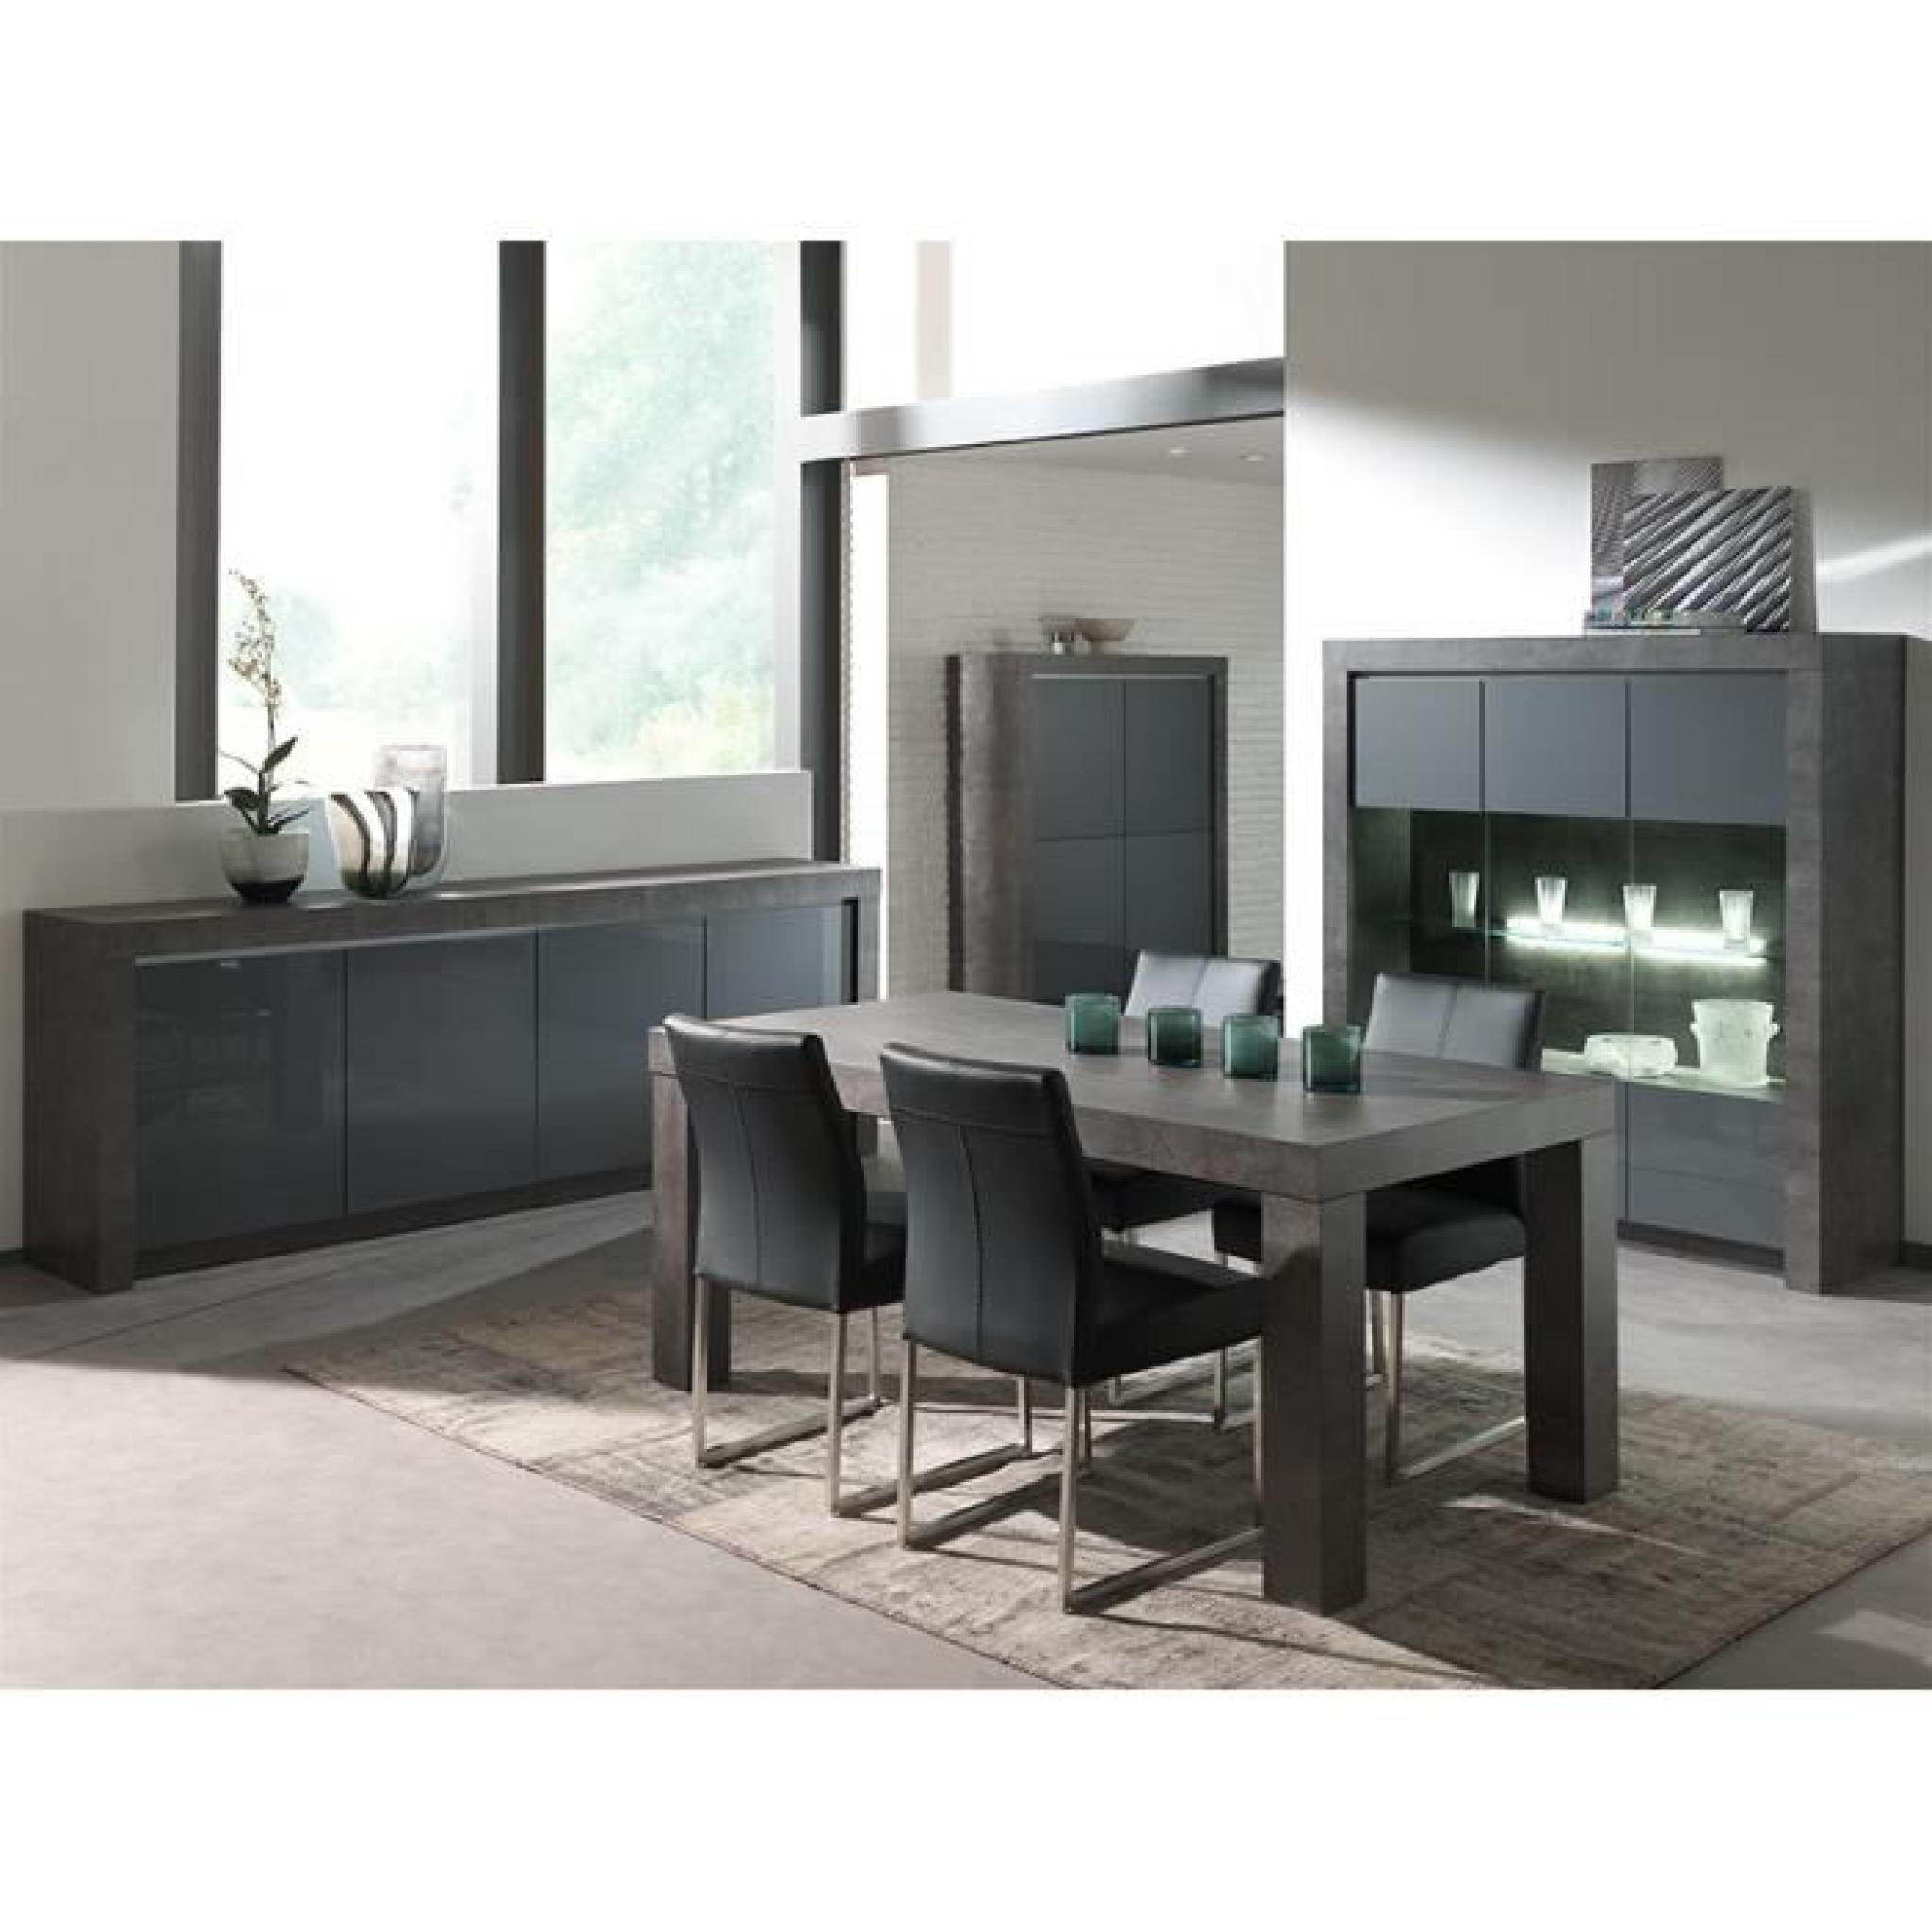 salle manger compl te gris laqu moderne murilo bahut l 218 cm table l 215 cm achat vente. Black Bedroom Furniture Sets. Home Design Ideas